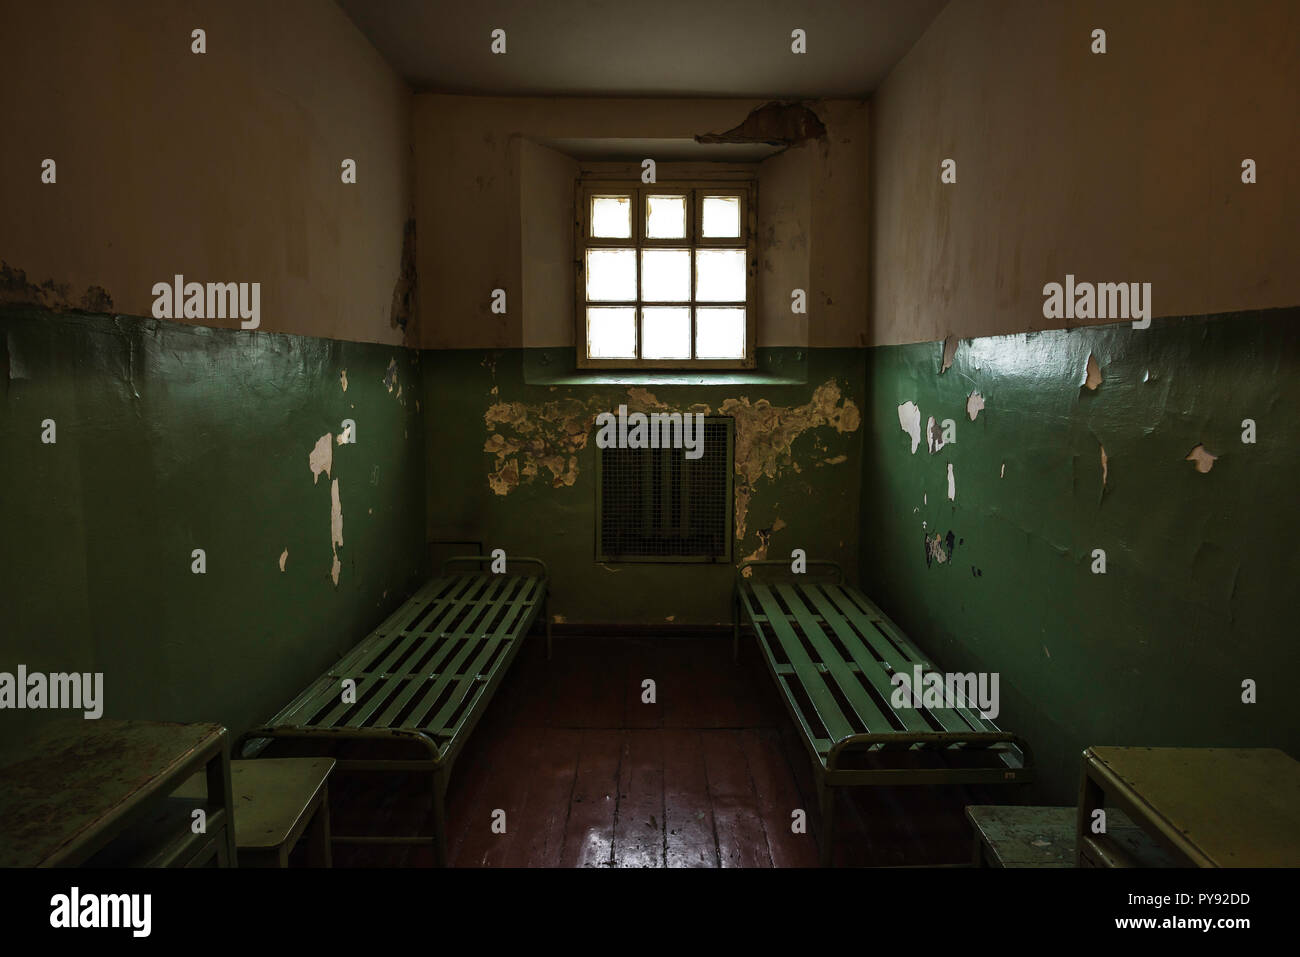 Museum of Genocide Victims Vilnius, view inside a prison cell used during the Nazi and Soviet occupations of Lithuania from 1930s to 1980s. - Stock Image